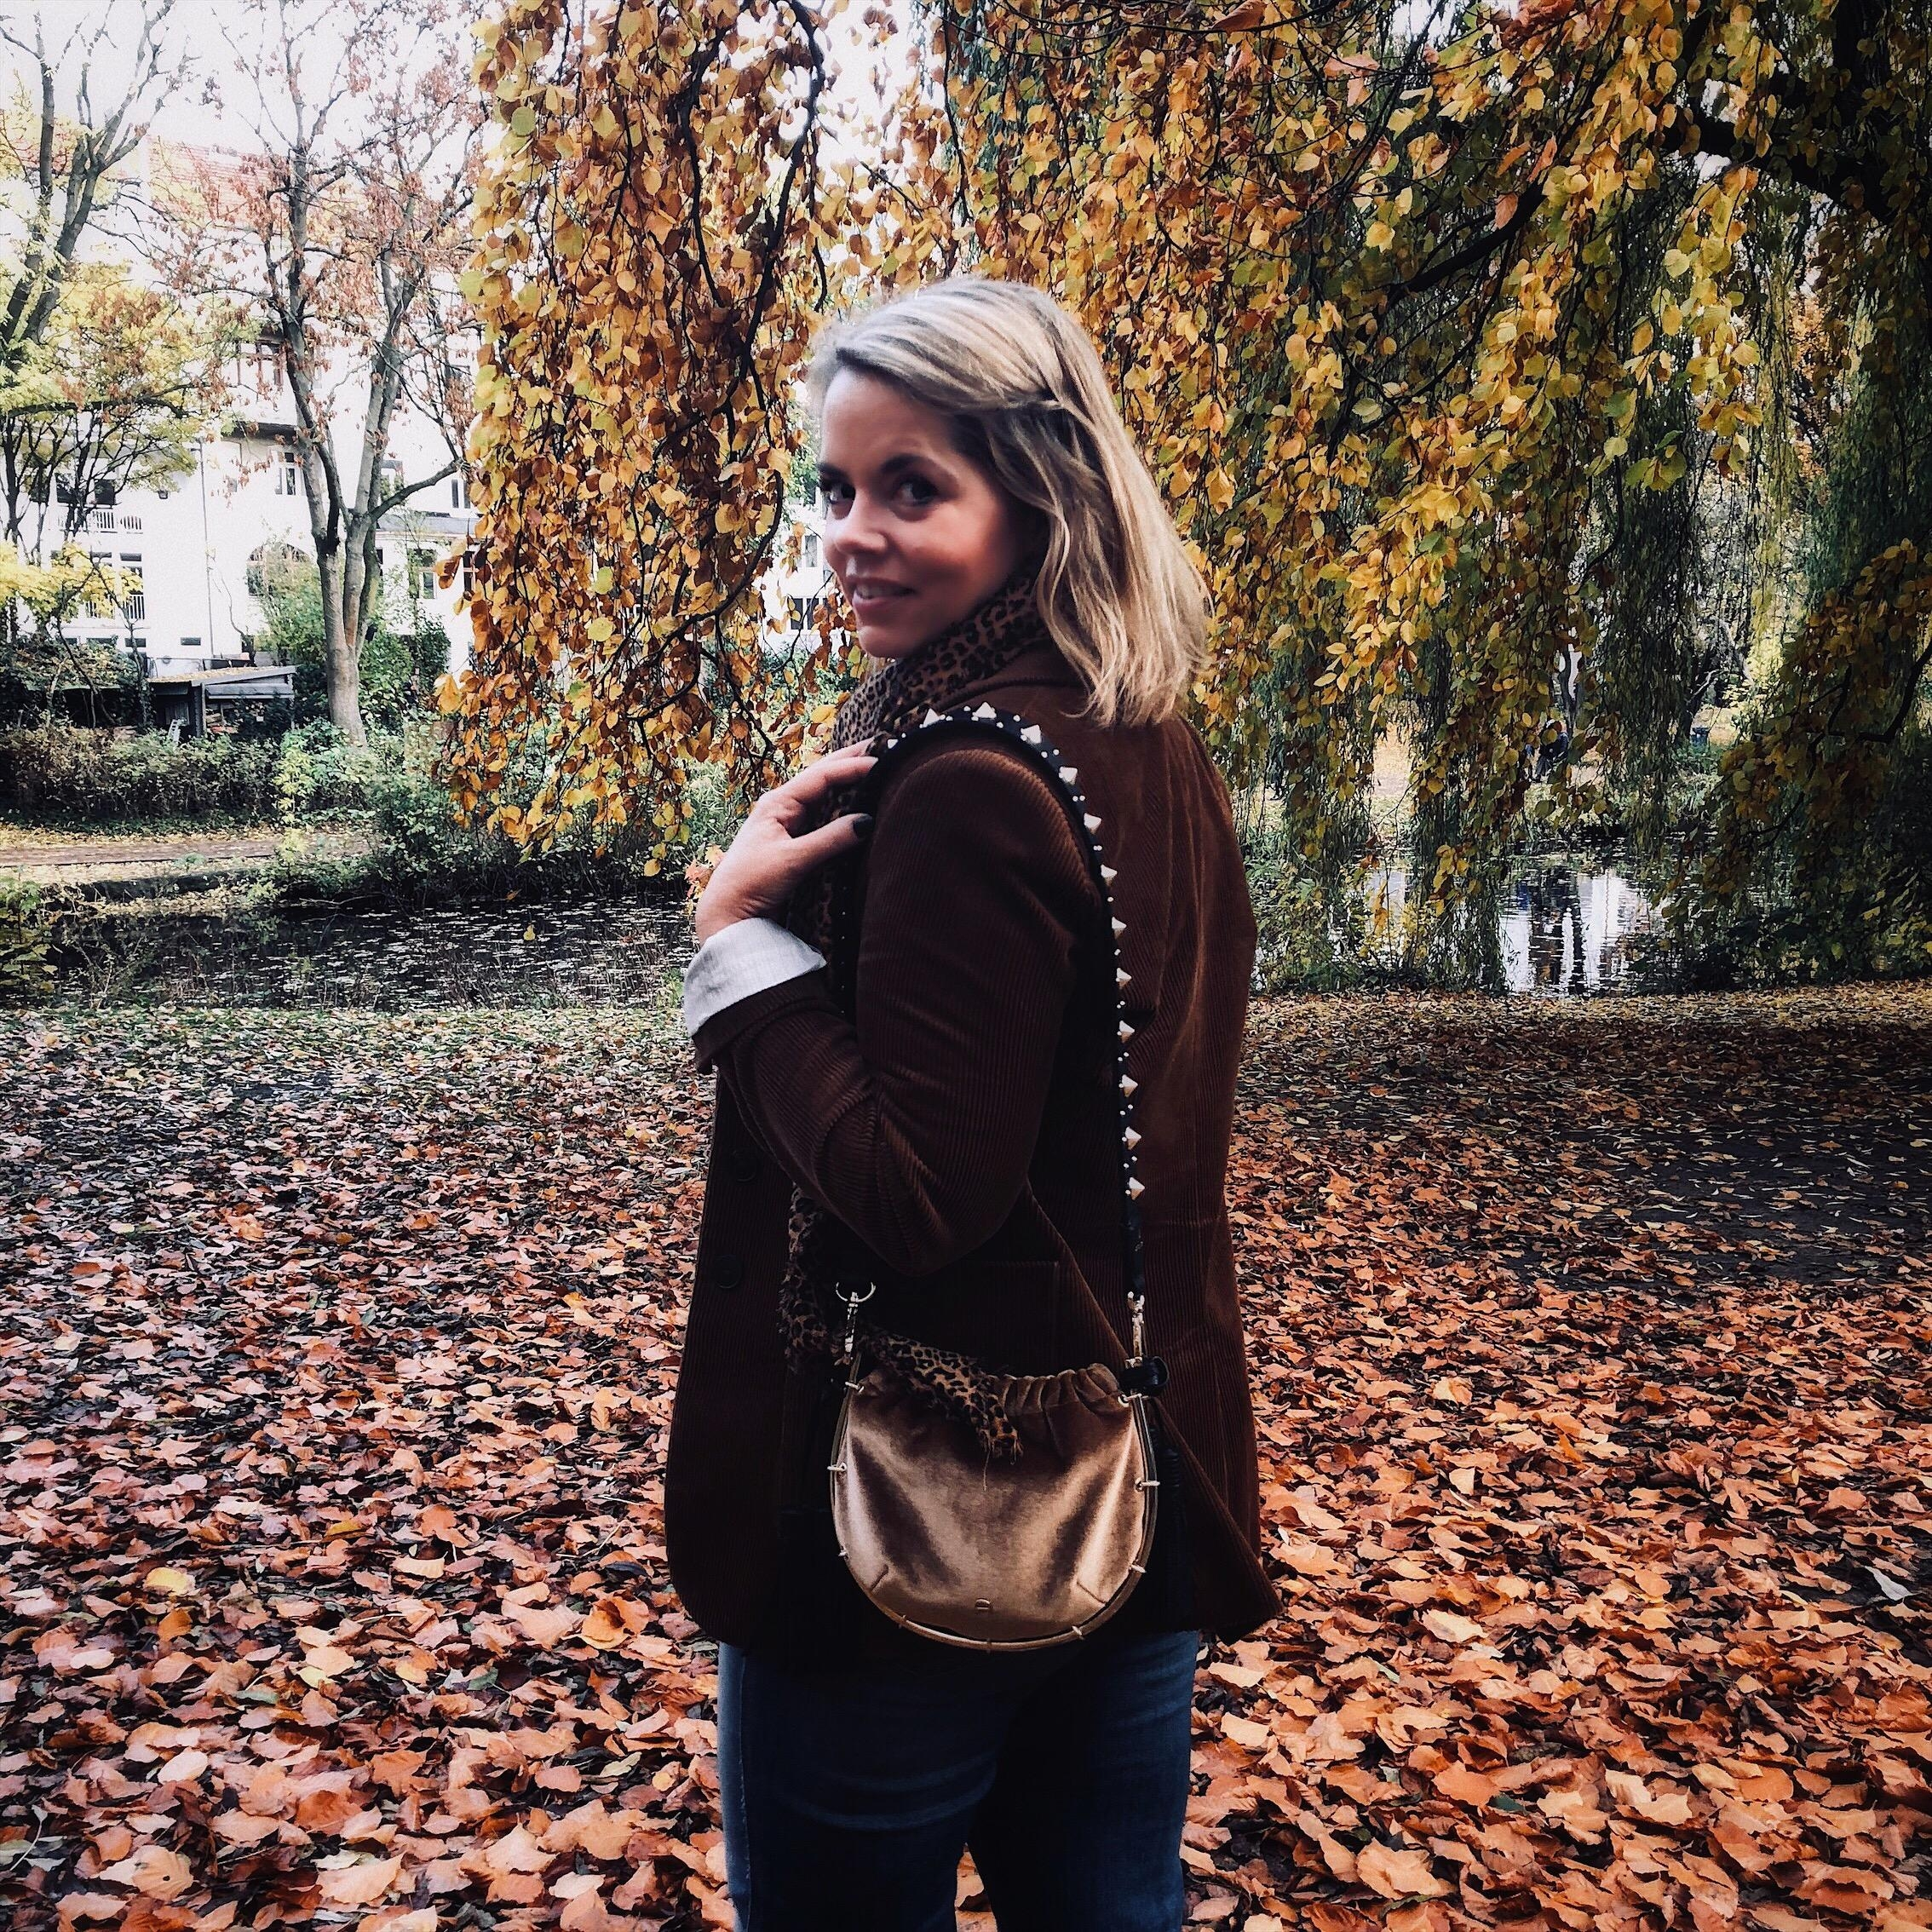 Herbstliebe #autumn #fashioncrush #blonde #streetstyle #herbst #portrait #happygirl #hamburg